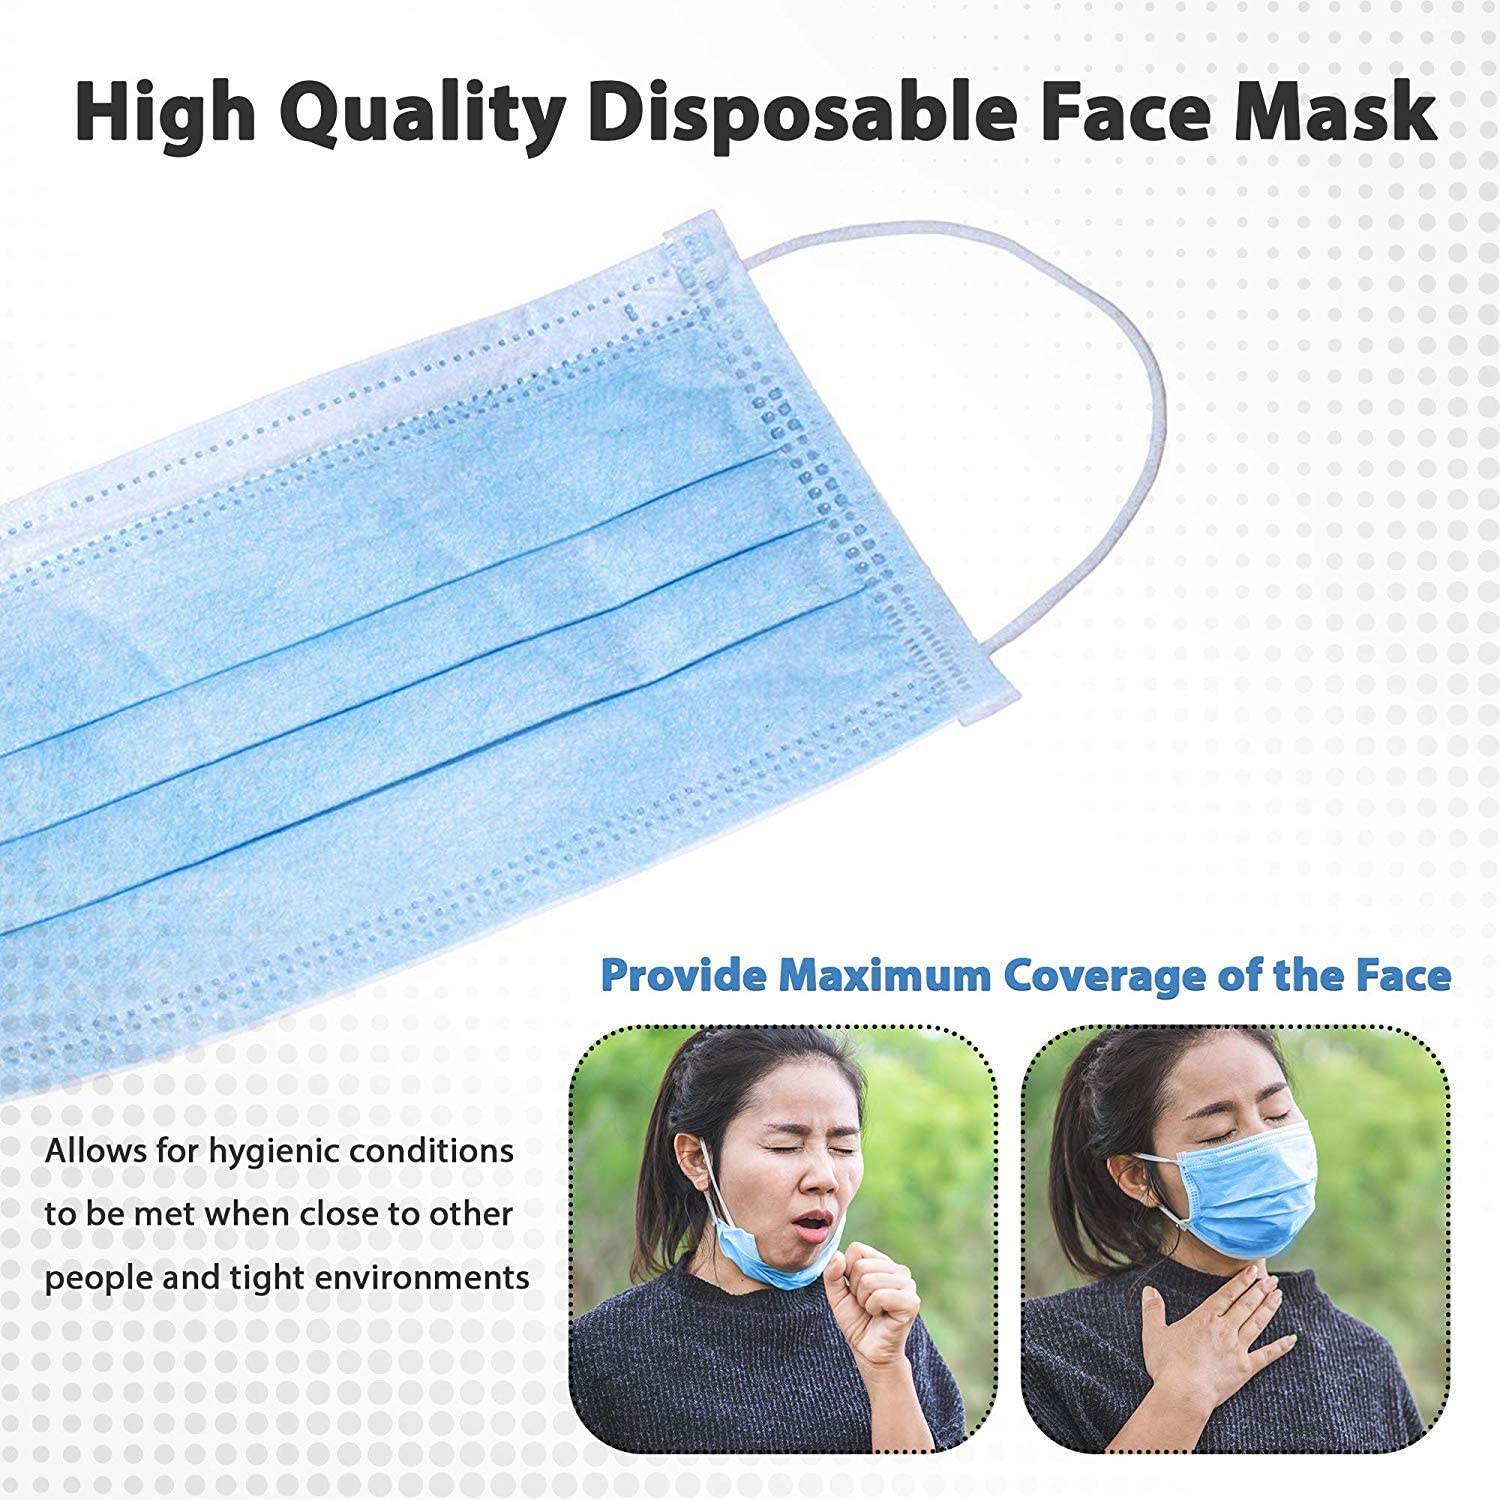 Disposable Face No Breathing Valve FDA certific Thick 3Ply 100 Pieces dust Protection